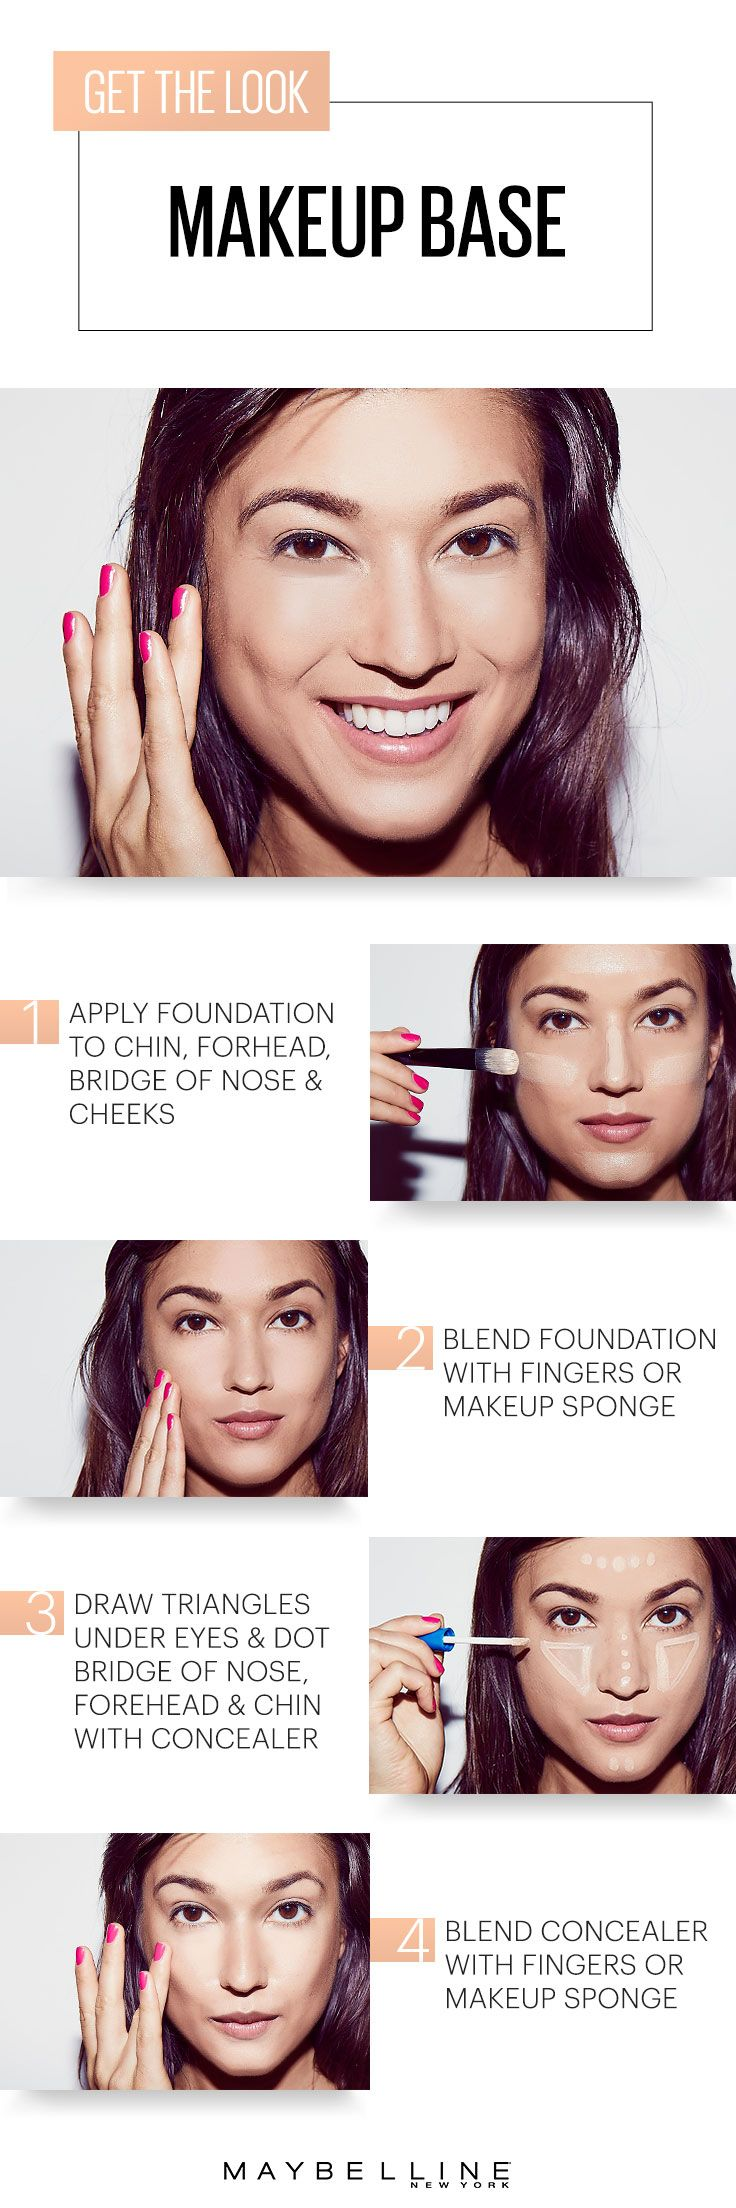 Spring makeup tip apply foundation first then concealer it spring makeup tip apply foundation first then concealer it makes your skin look ccuart Gallery